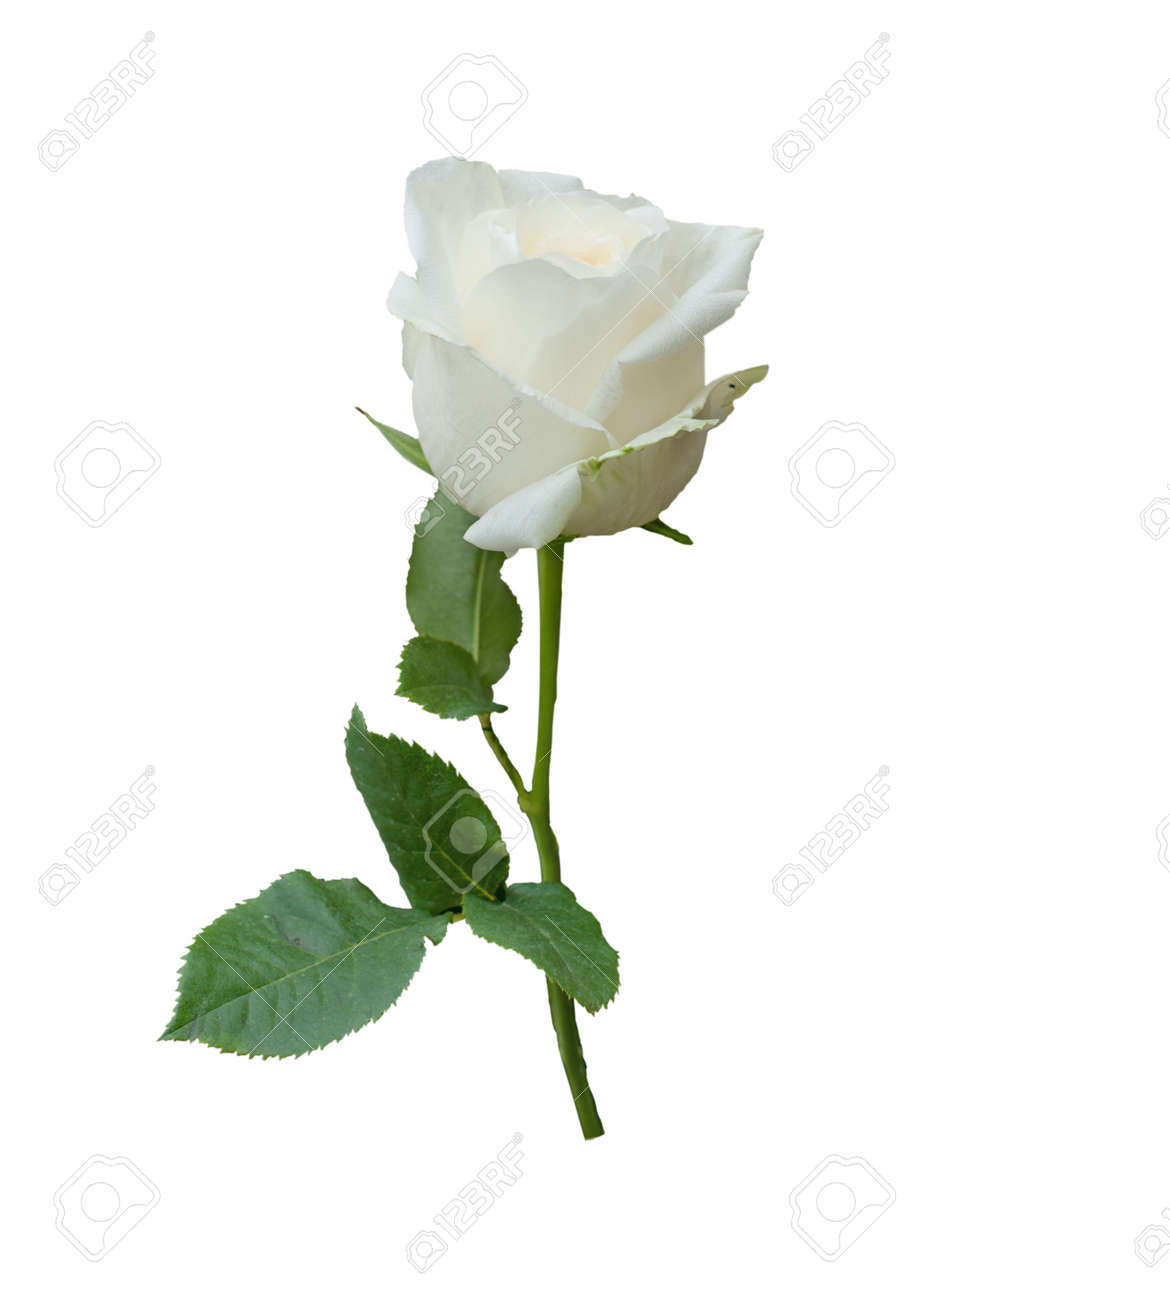 Single White Rose Flower Isolated On White Background Stock Photo Picture And Royalty Free Image Image 11477141